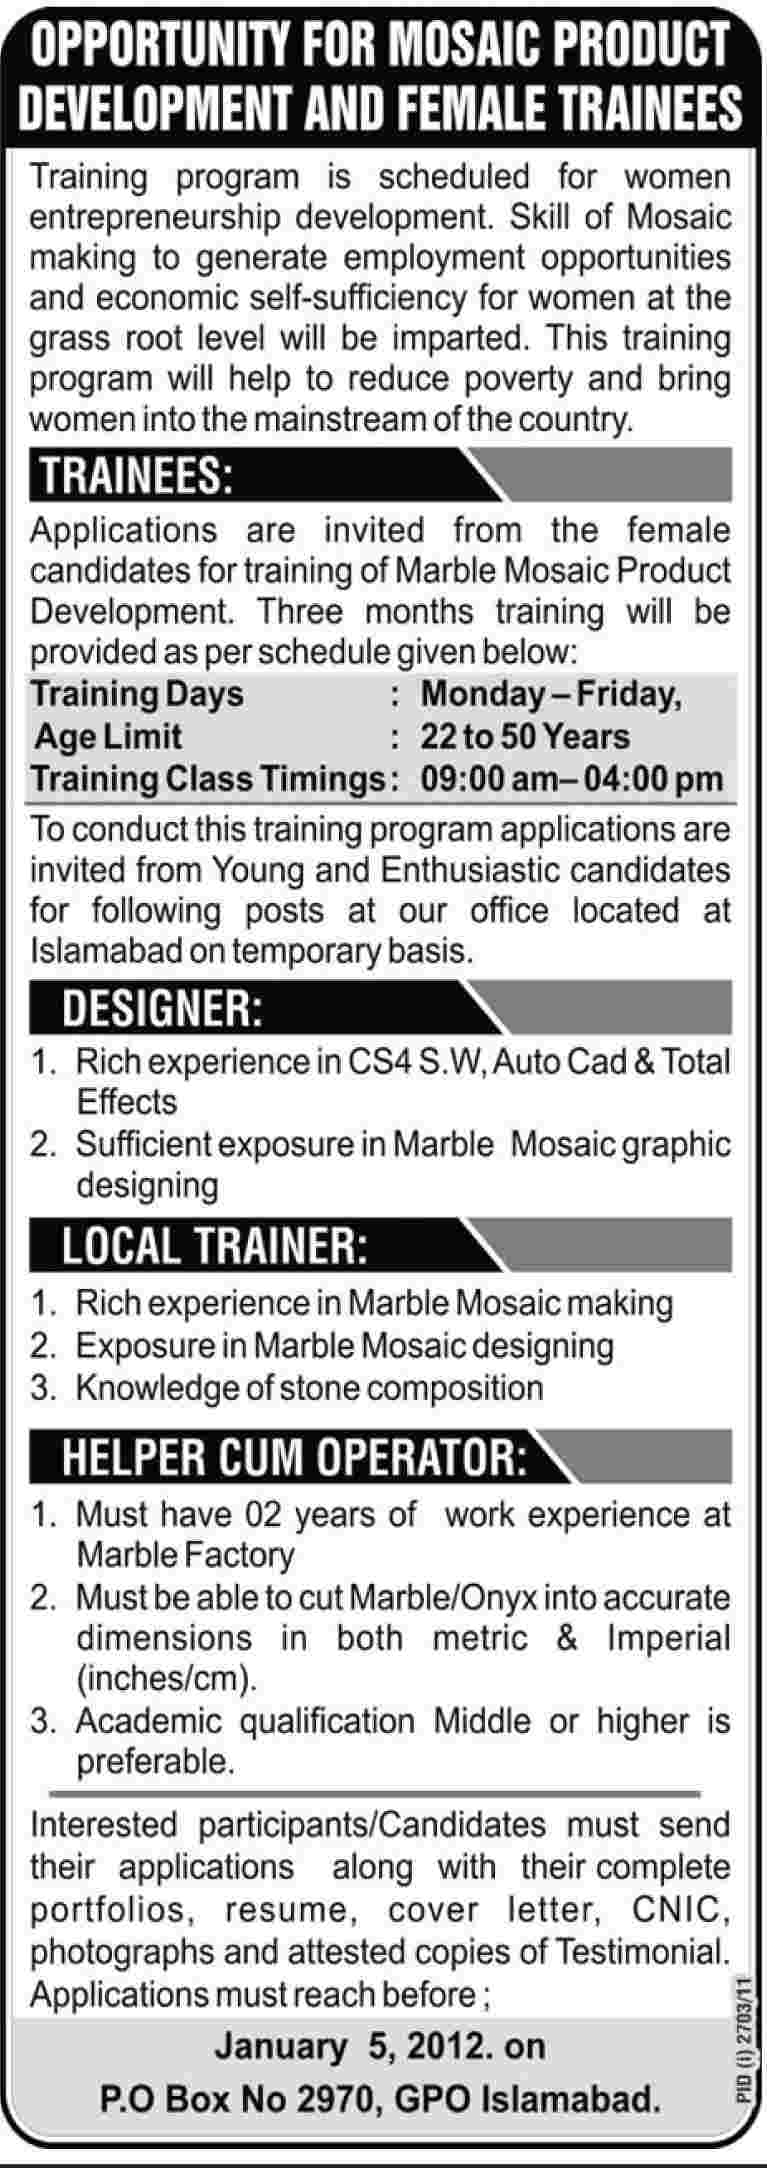 Jobs Opportunity for Mosaic Product Development and Female Trainees